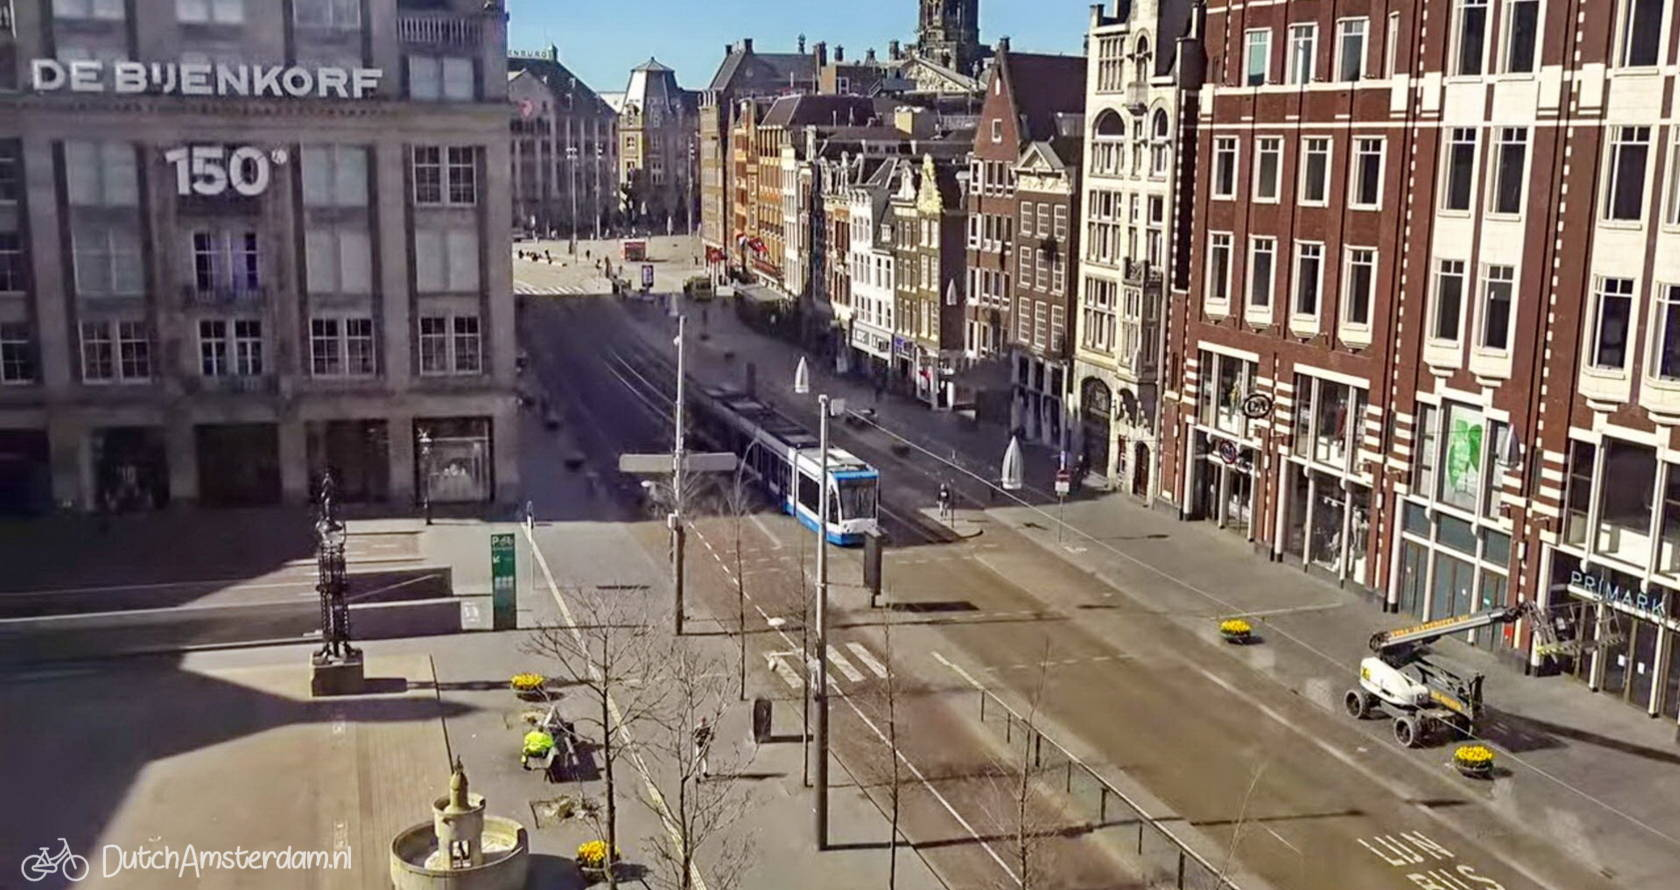 Damrak, the main street between Amsterdam Central Station and Dam square is nearly empty a result of the Coronavirus lockdown.